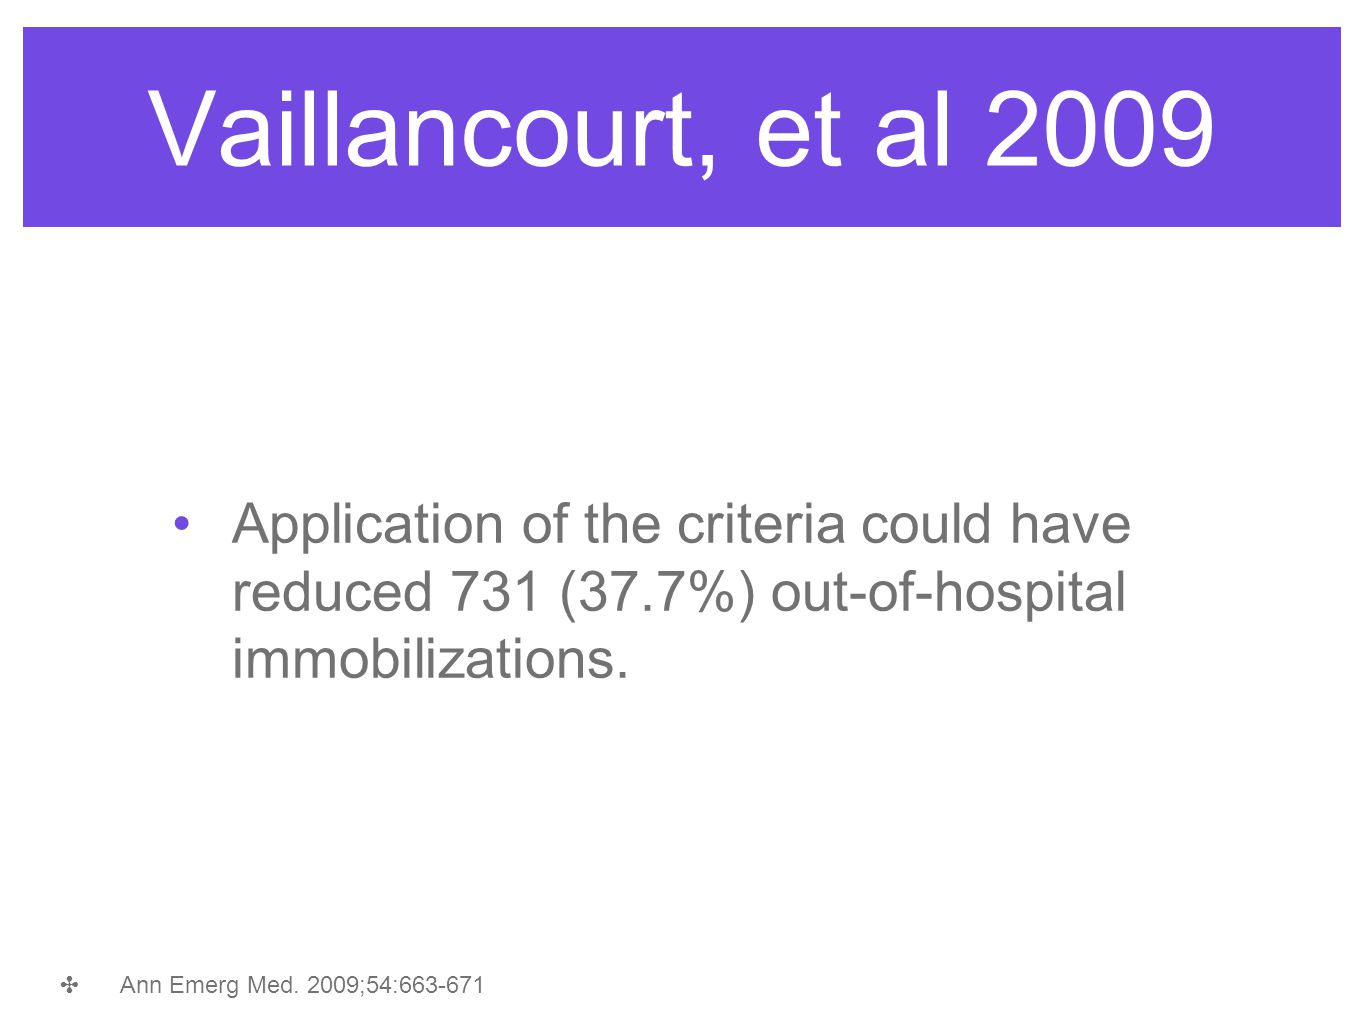 Vaillancourt, et al 2009 Application of the criteria could have reduced 731 (37.7%) out-of-hospital immobilizations.